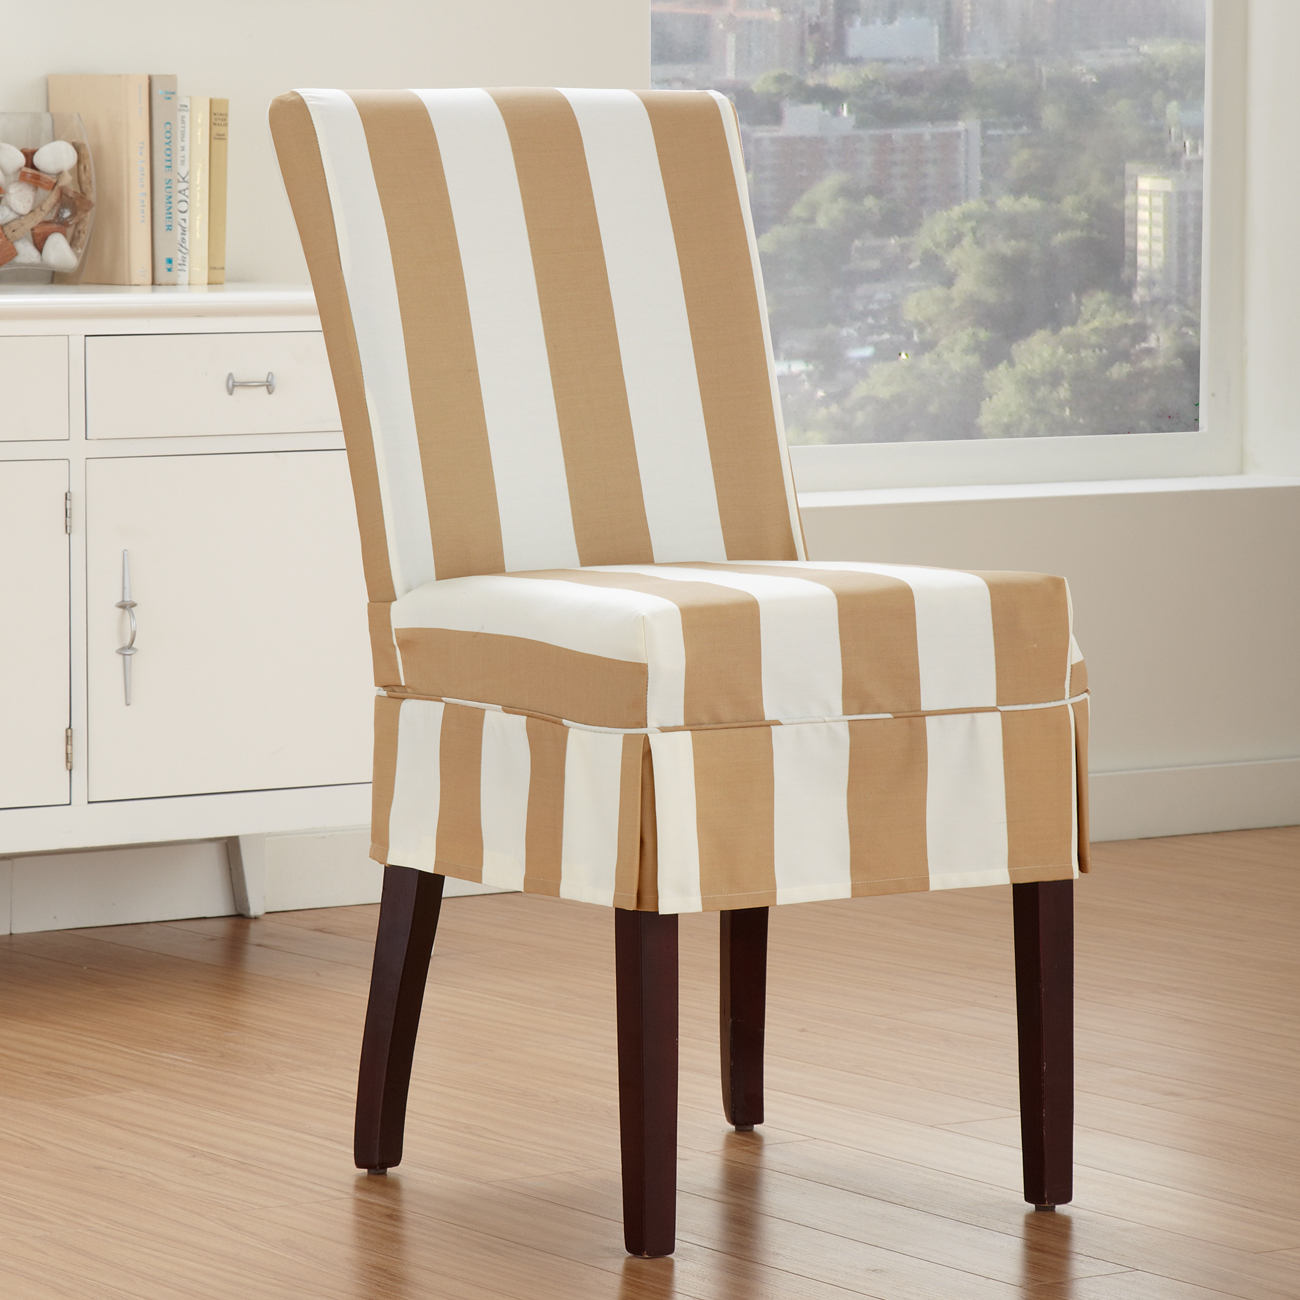 Slip covers dining chairs Photo - 1